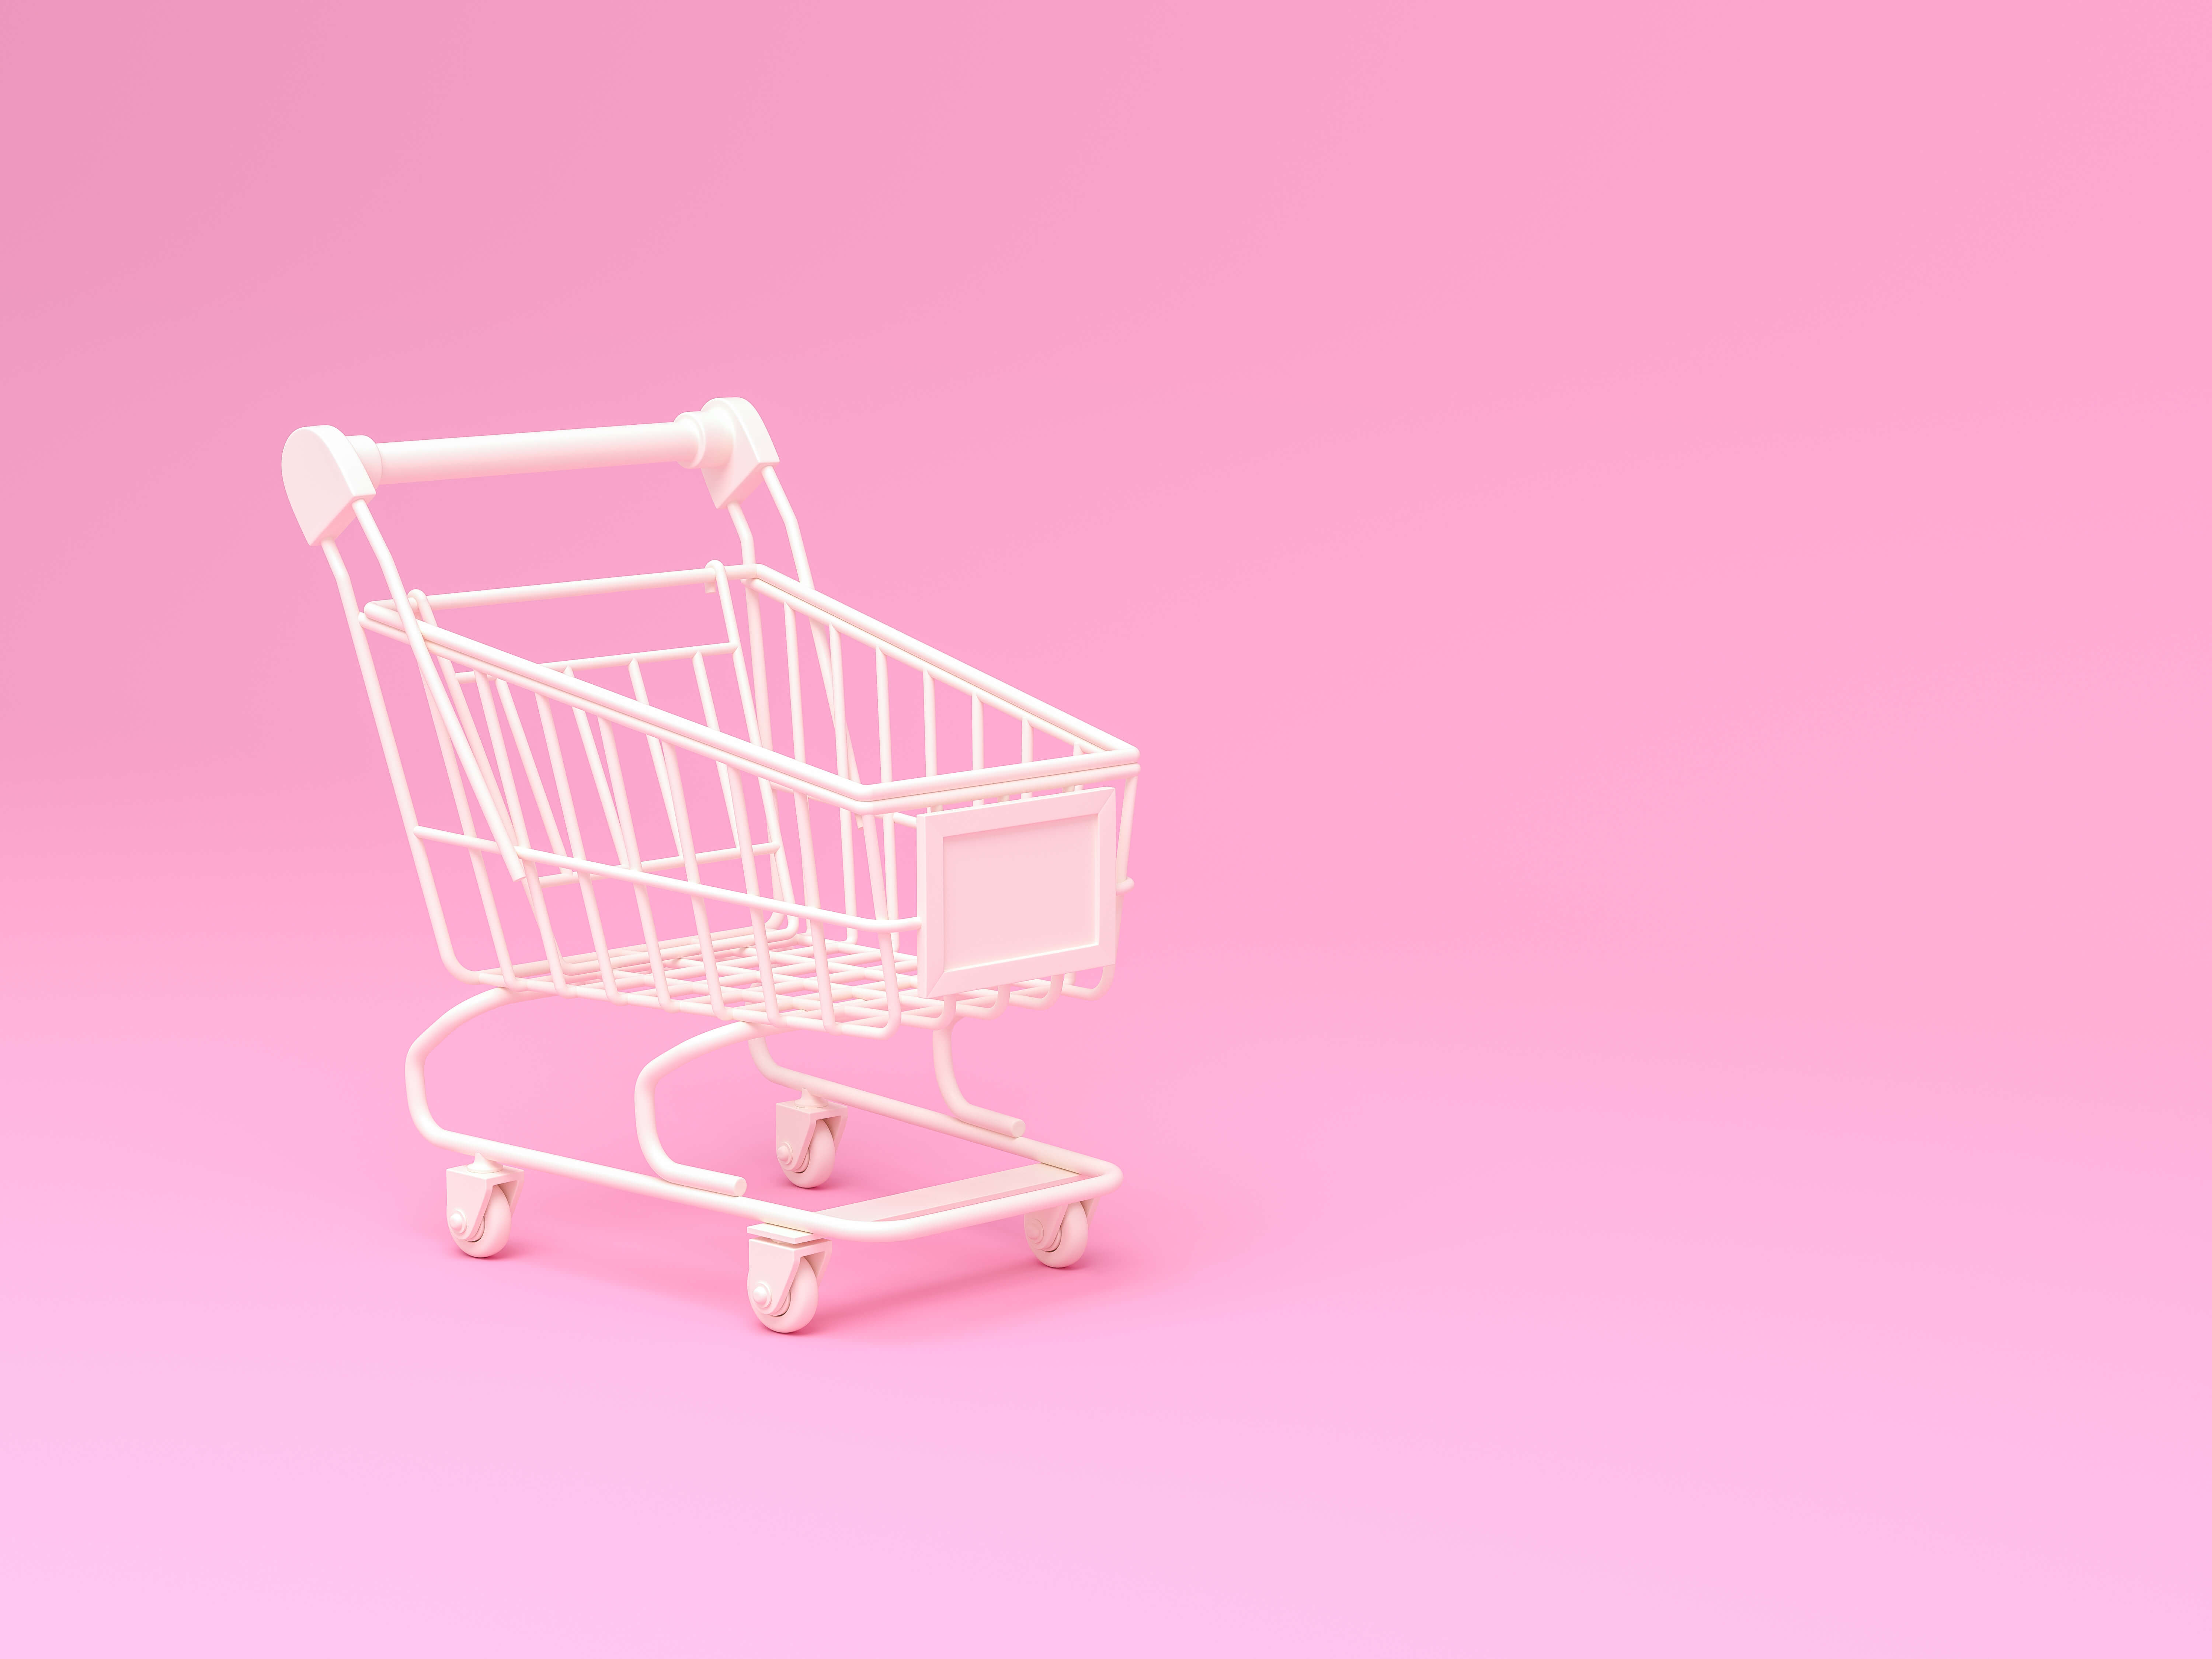 The Kingdom - The Ultimate Shopify Checklist - eCommerce